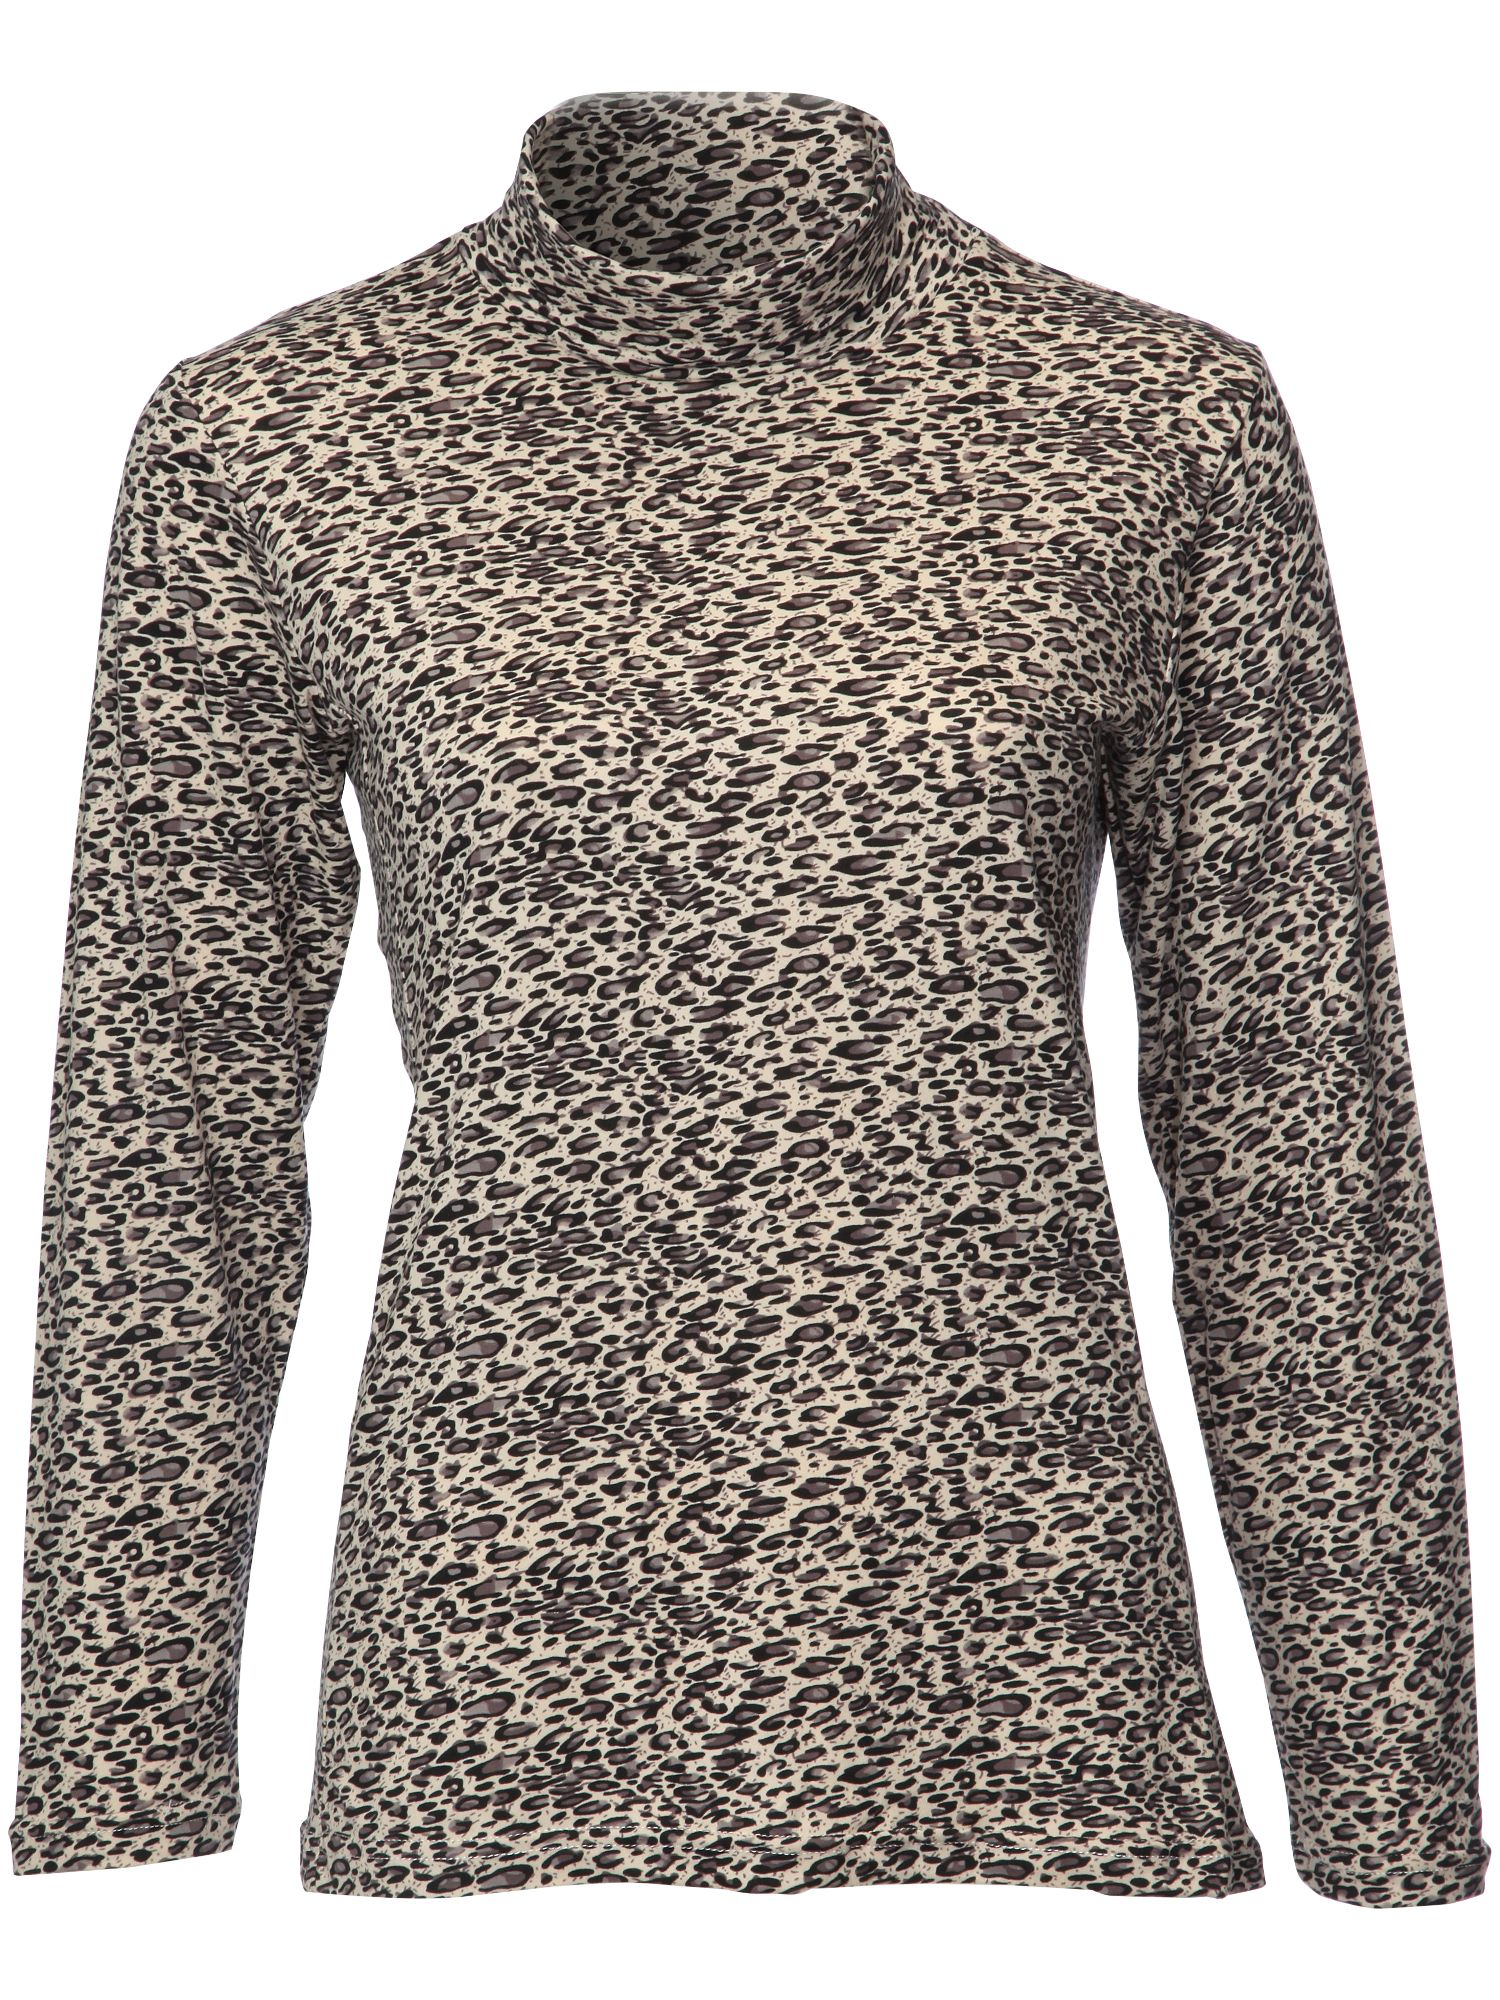 Swing Out Sister Pardus Print Roll Neck, Cream